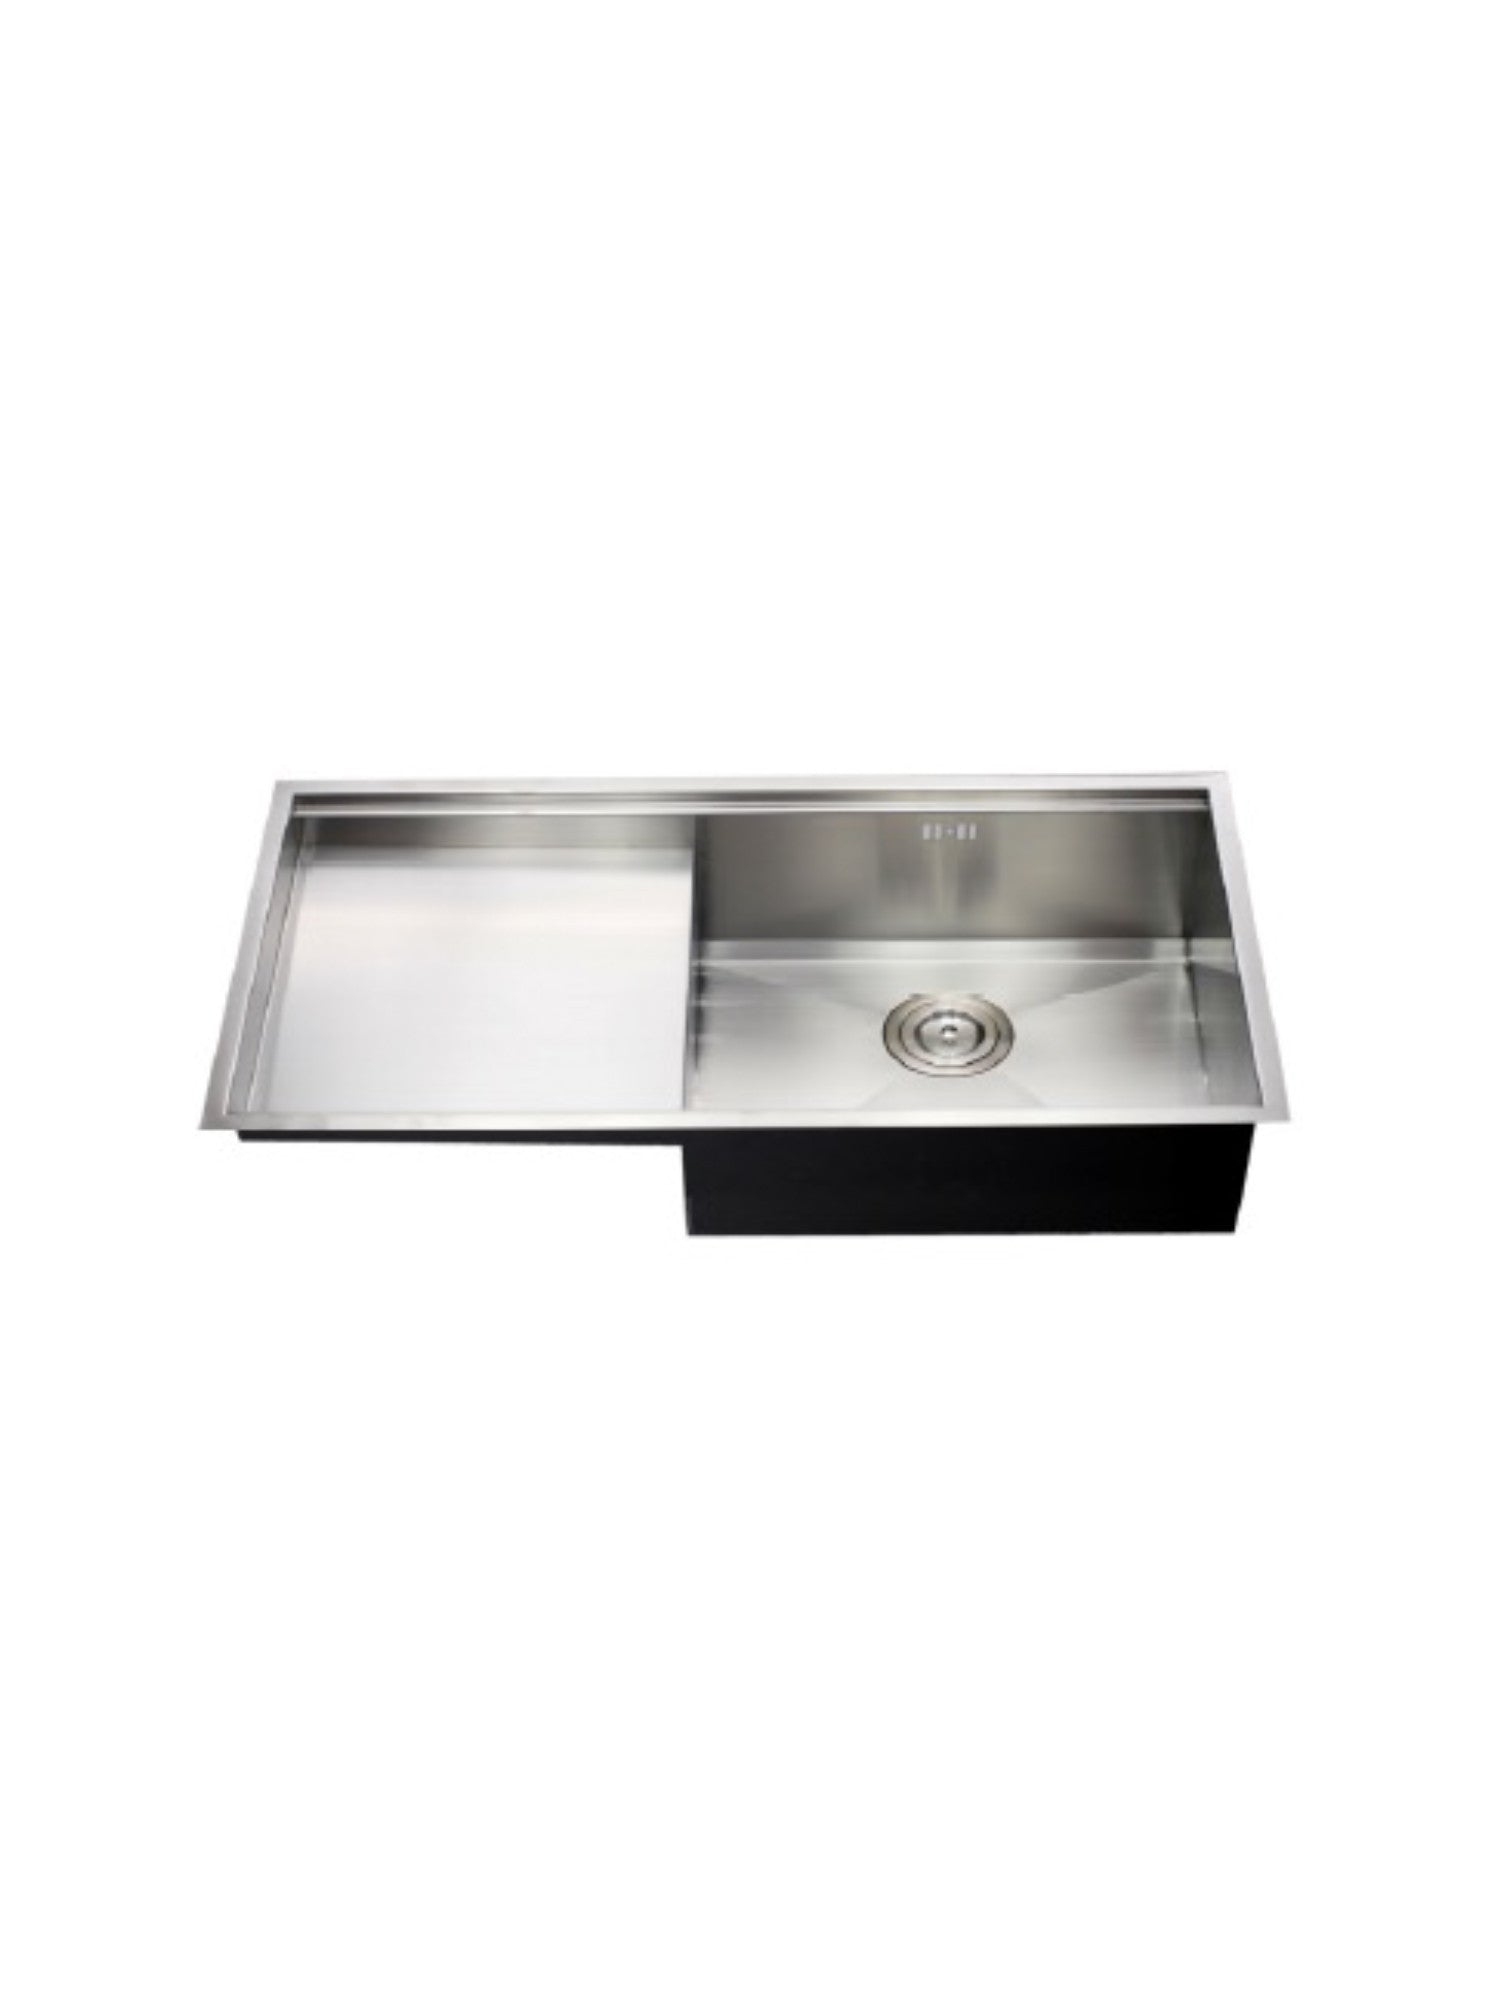 Single bowl Kitchen Sink #SQM-730D